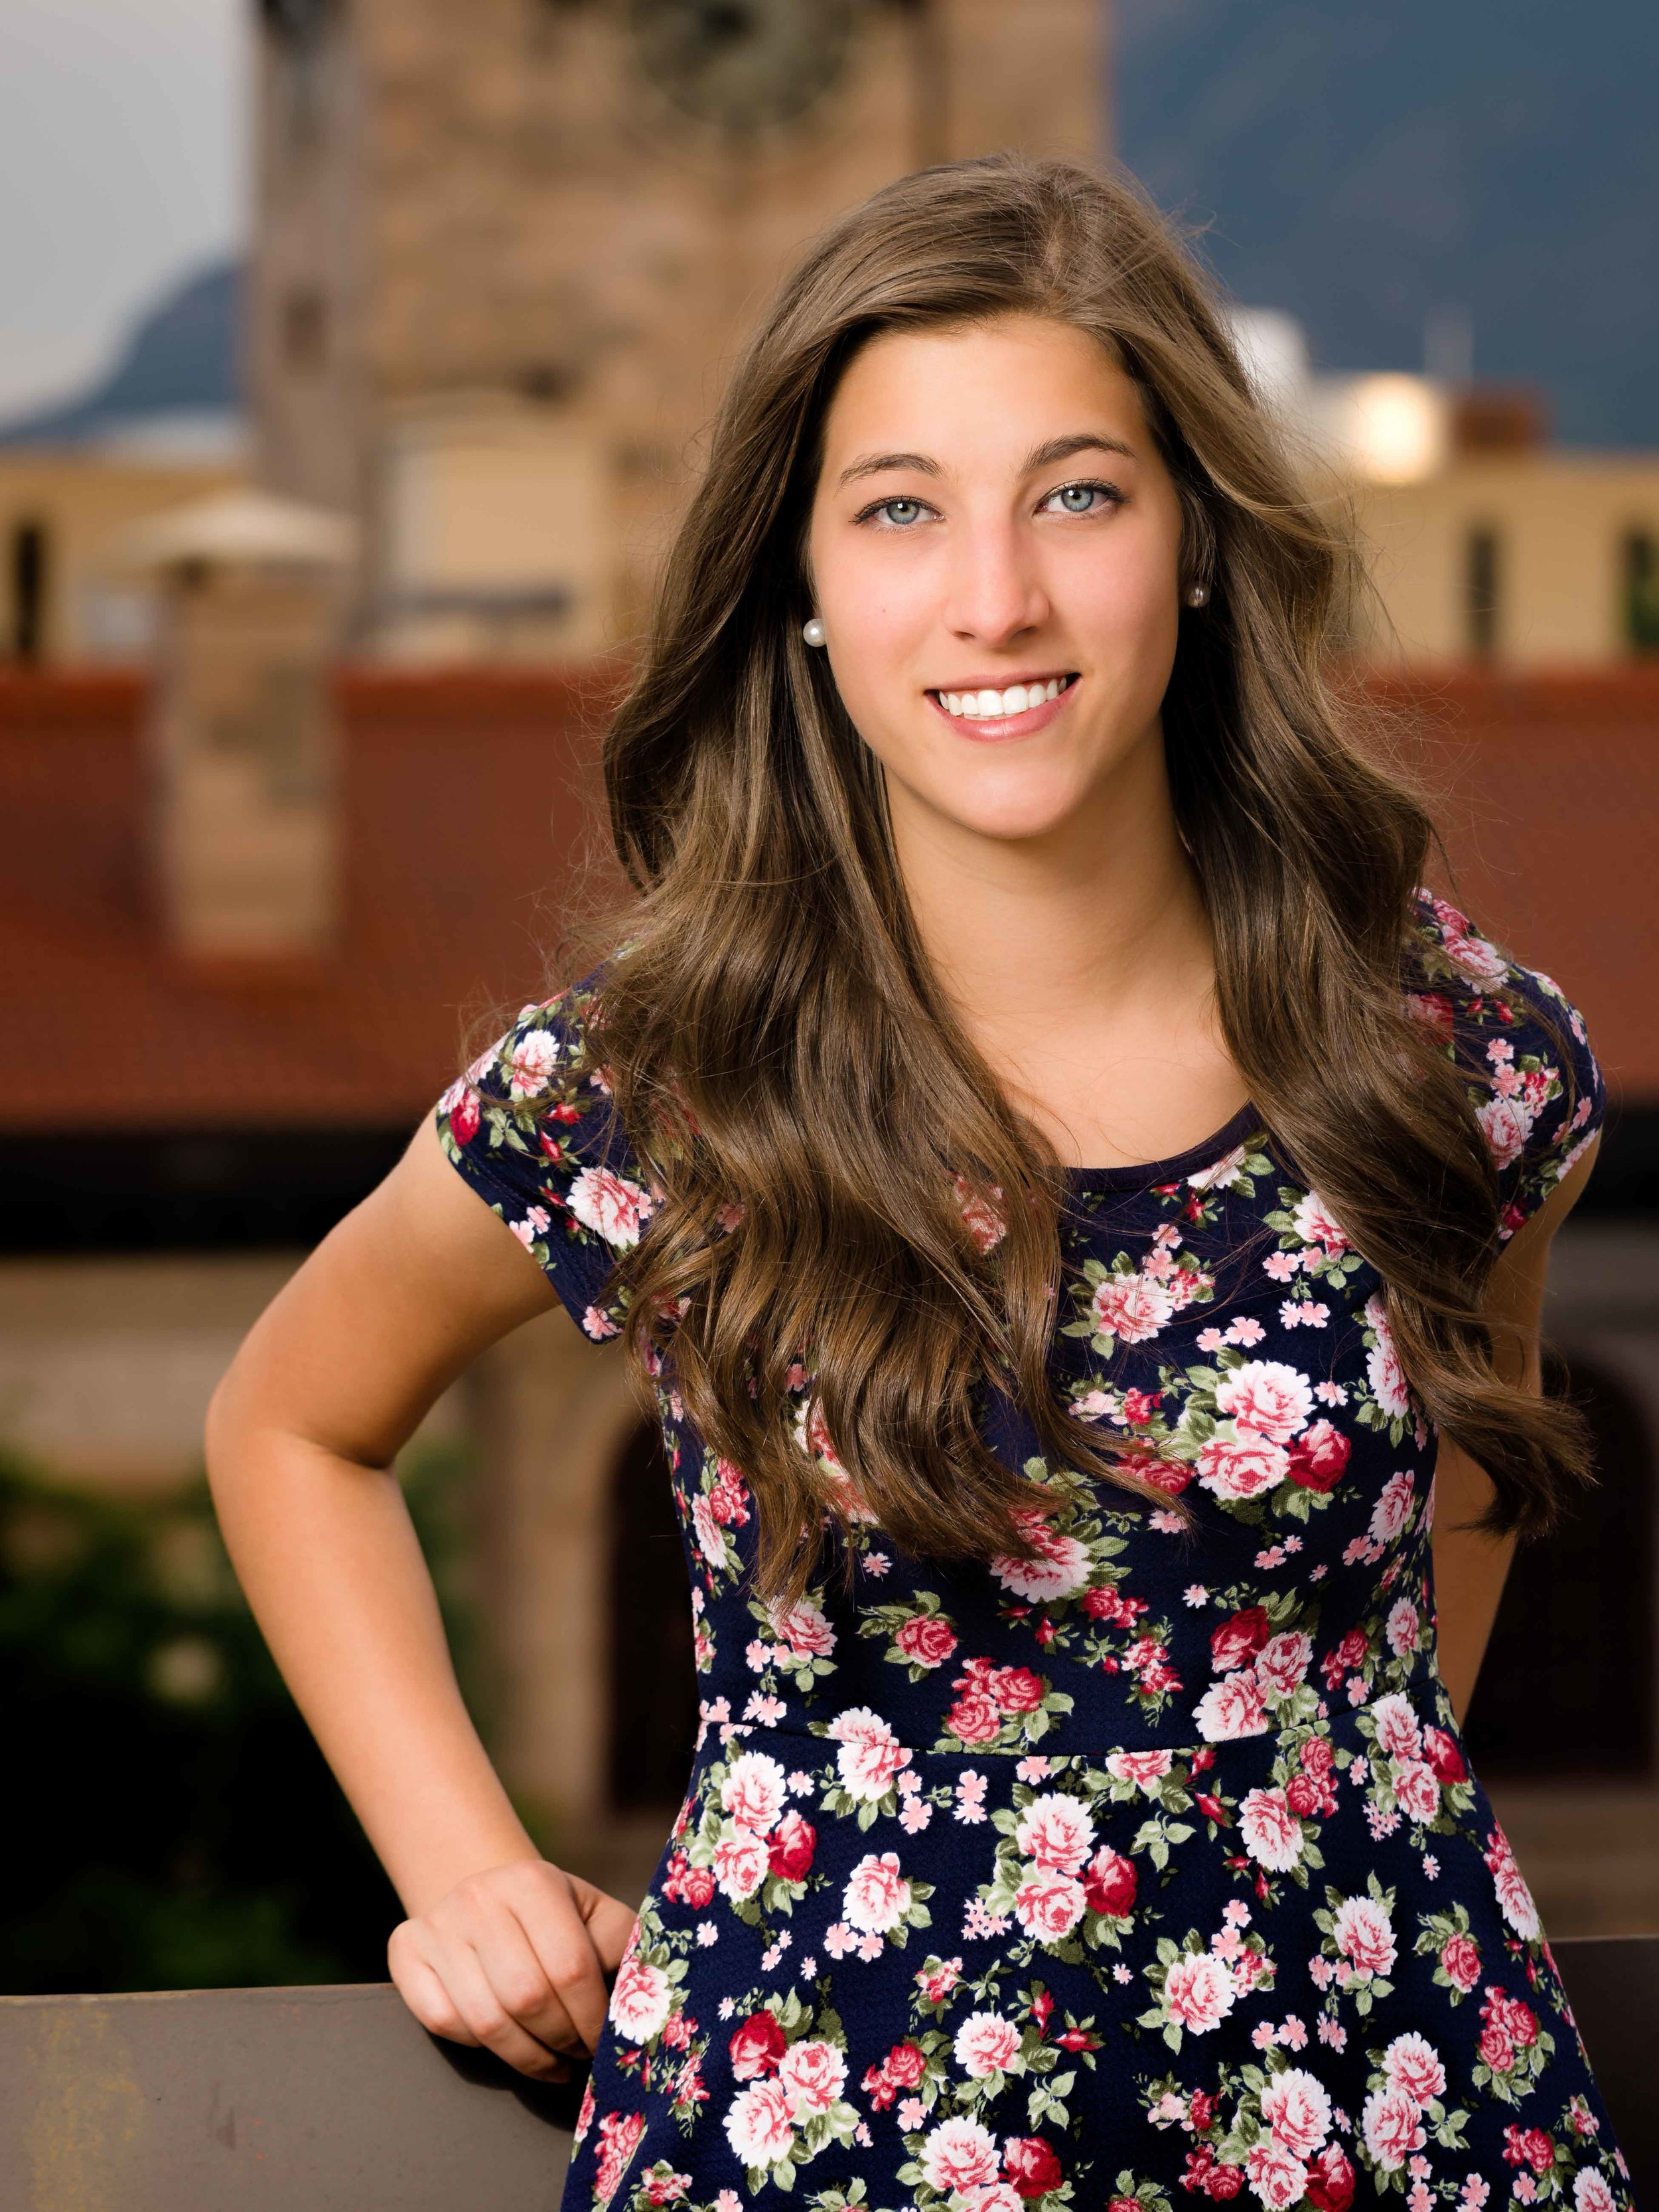 Amy H. from Palmer High School.  Senior photo session, 2015.